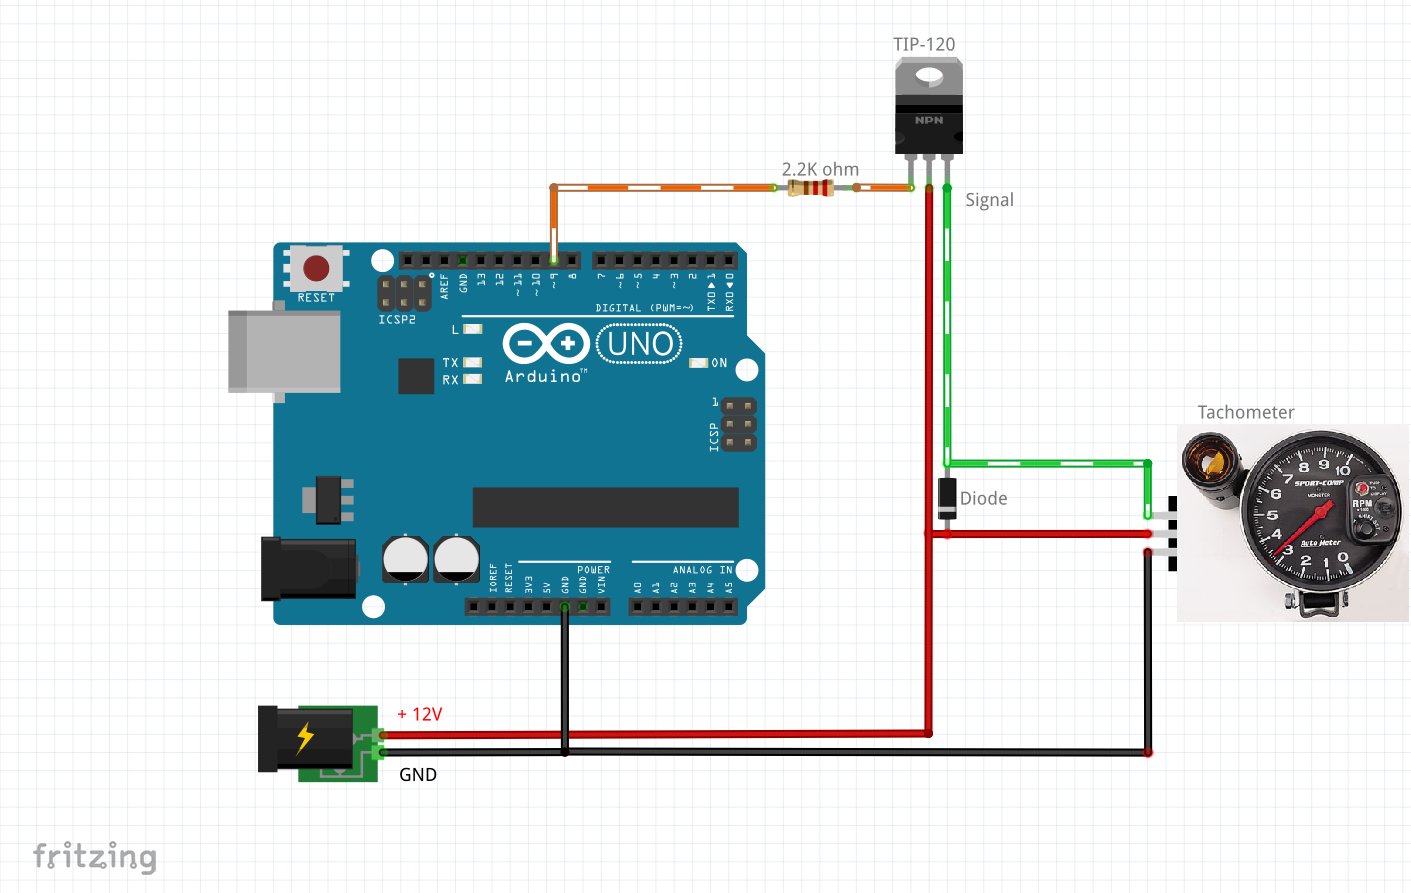 Central Heating Timer Wiring Diagram together with Arduino Revburner Driving A Tachometer besides Dual Radio Wiring Diagram moreover Ignition Coil Wiring Diagram additionally Logik Washing Machine Error Codes How To Clear. on tachometer wiring diagram